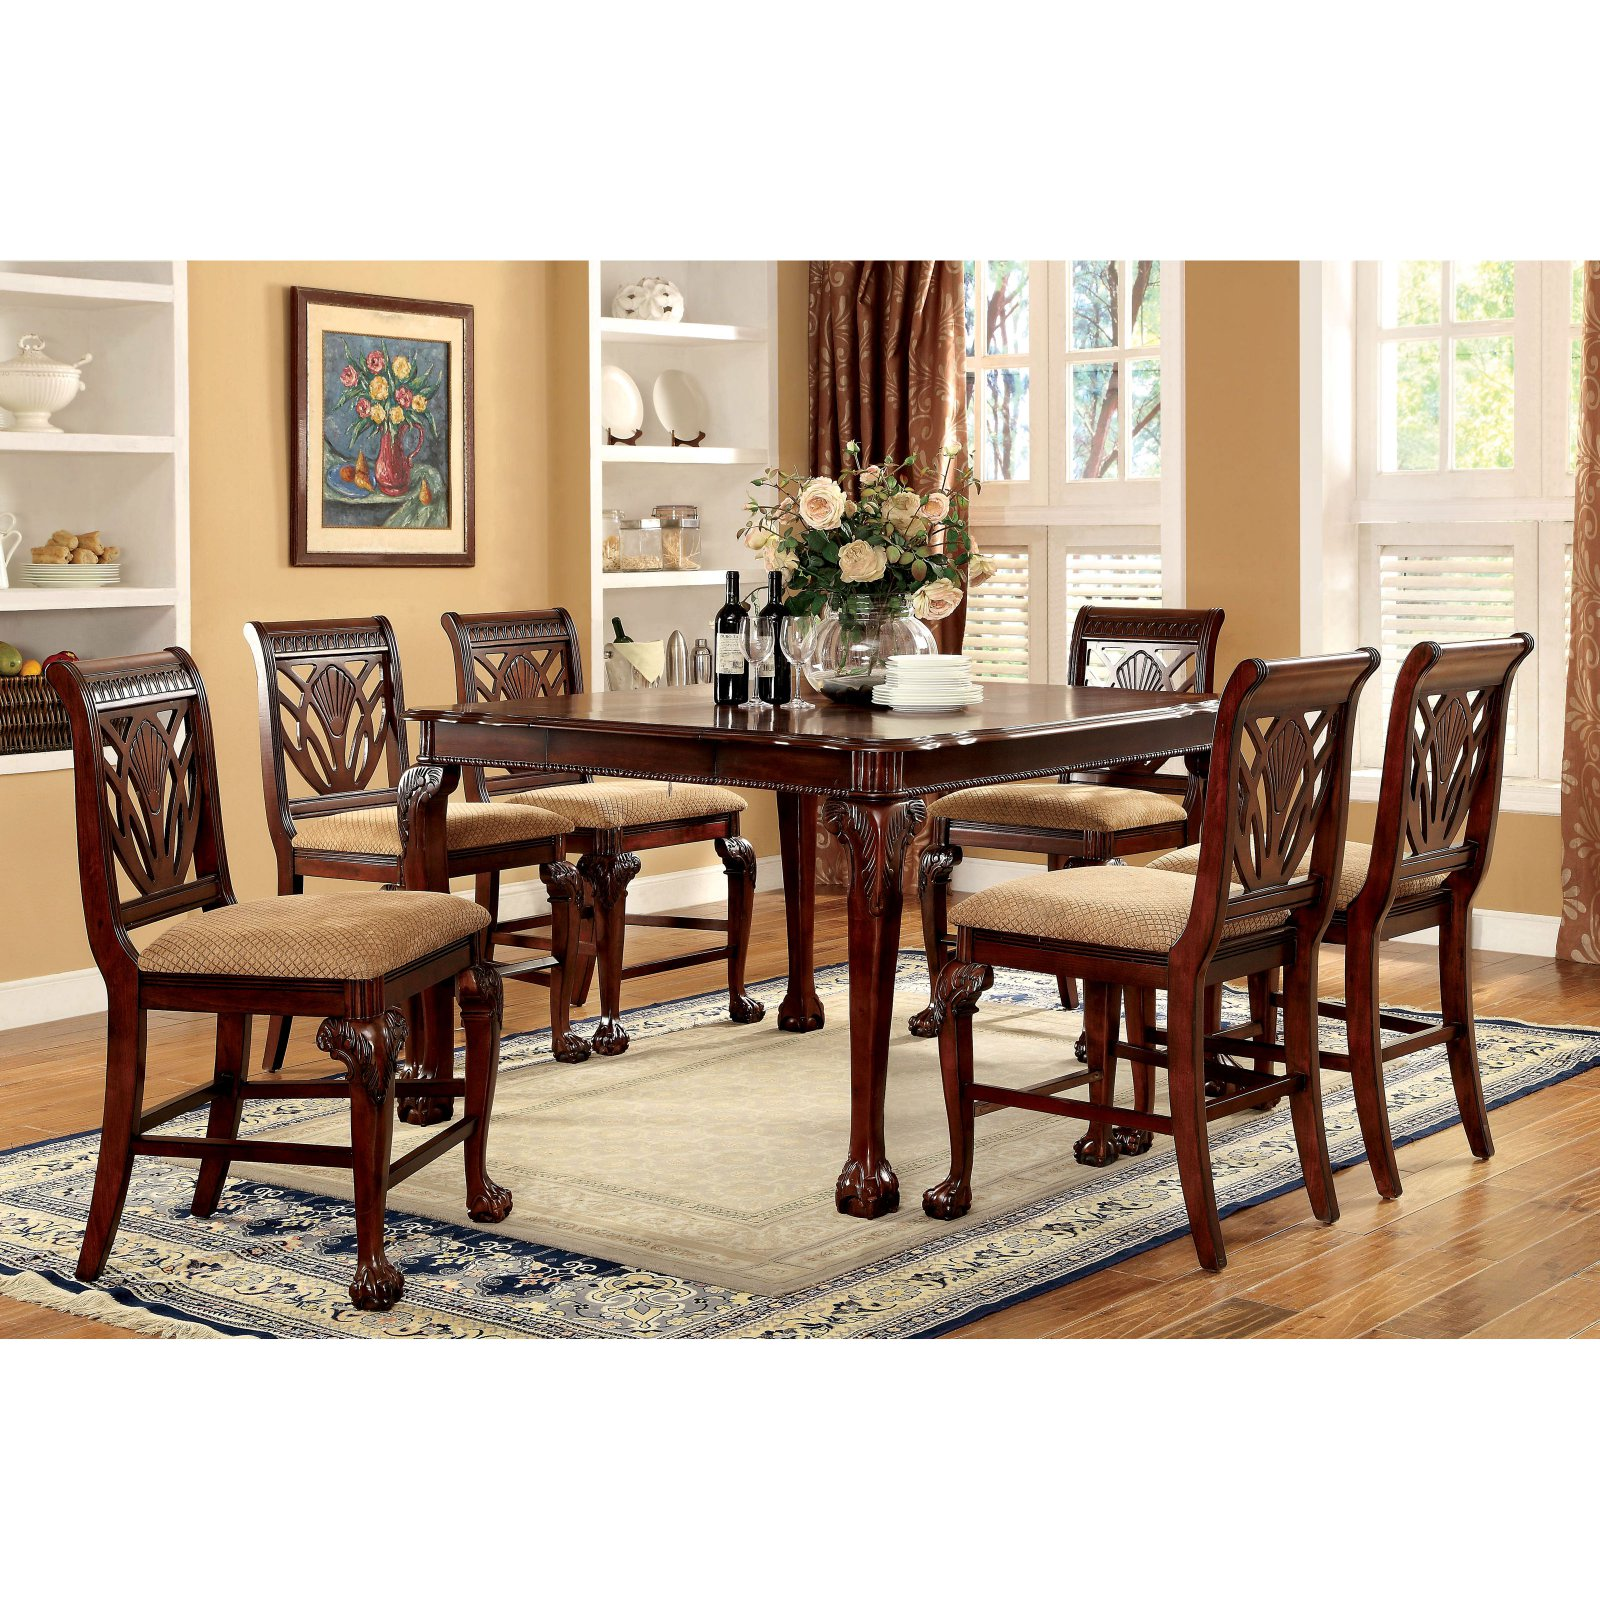 Furniture of America Harsburough Classic Counter Height Dining Table